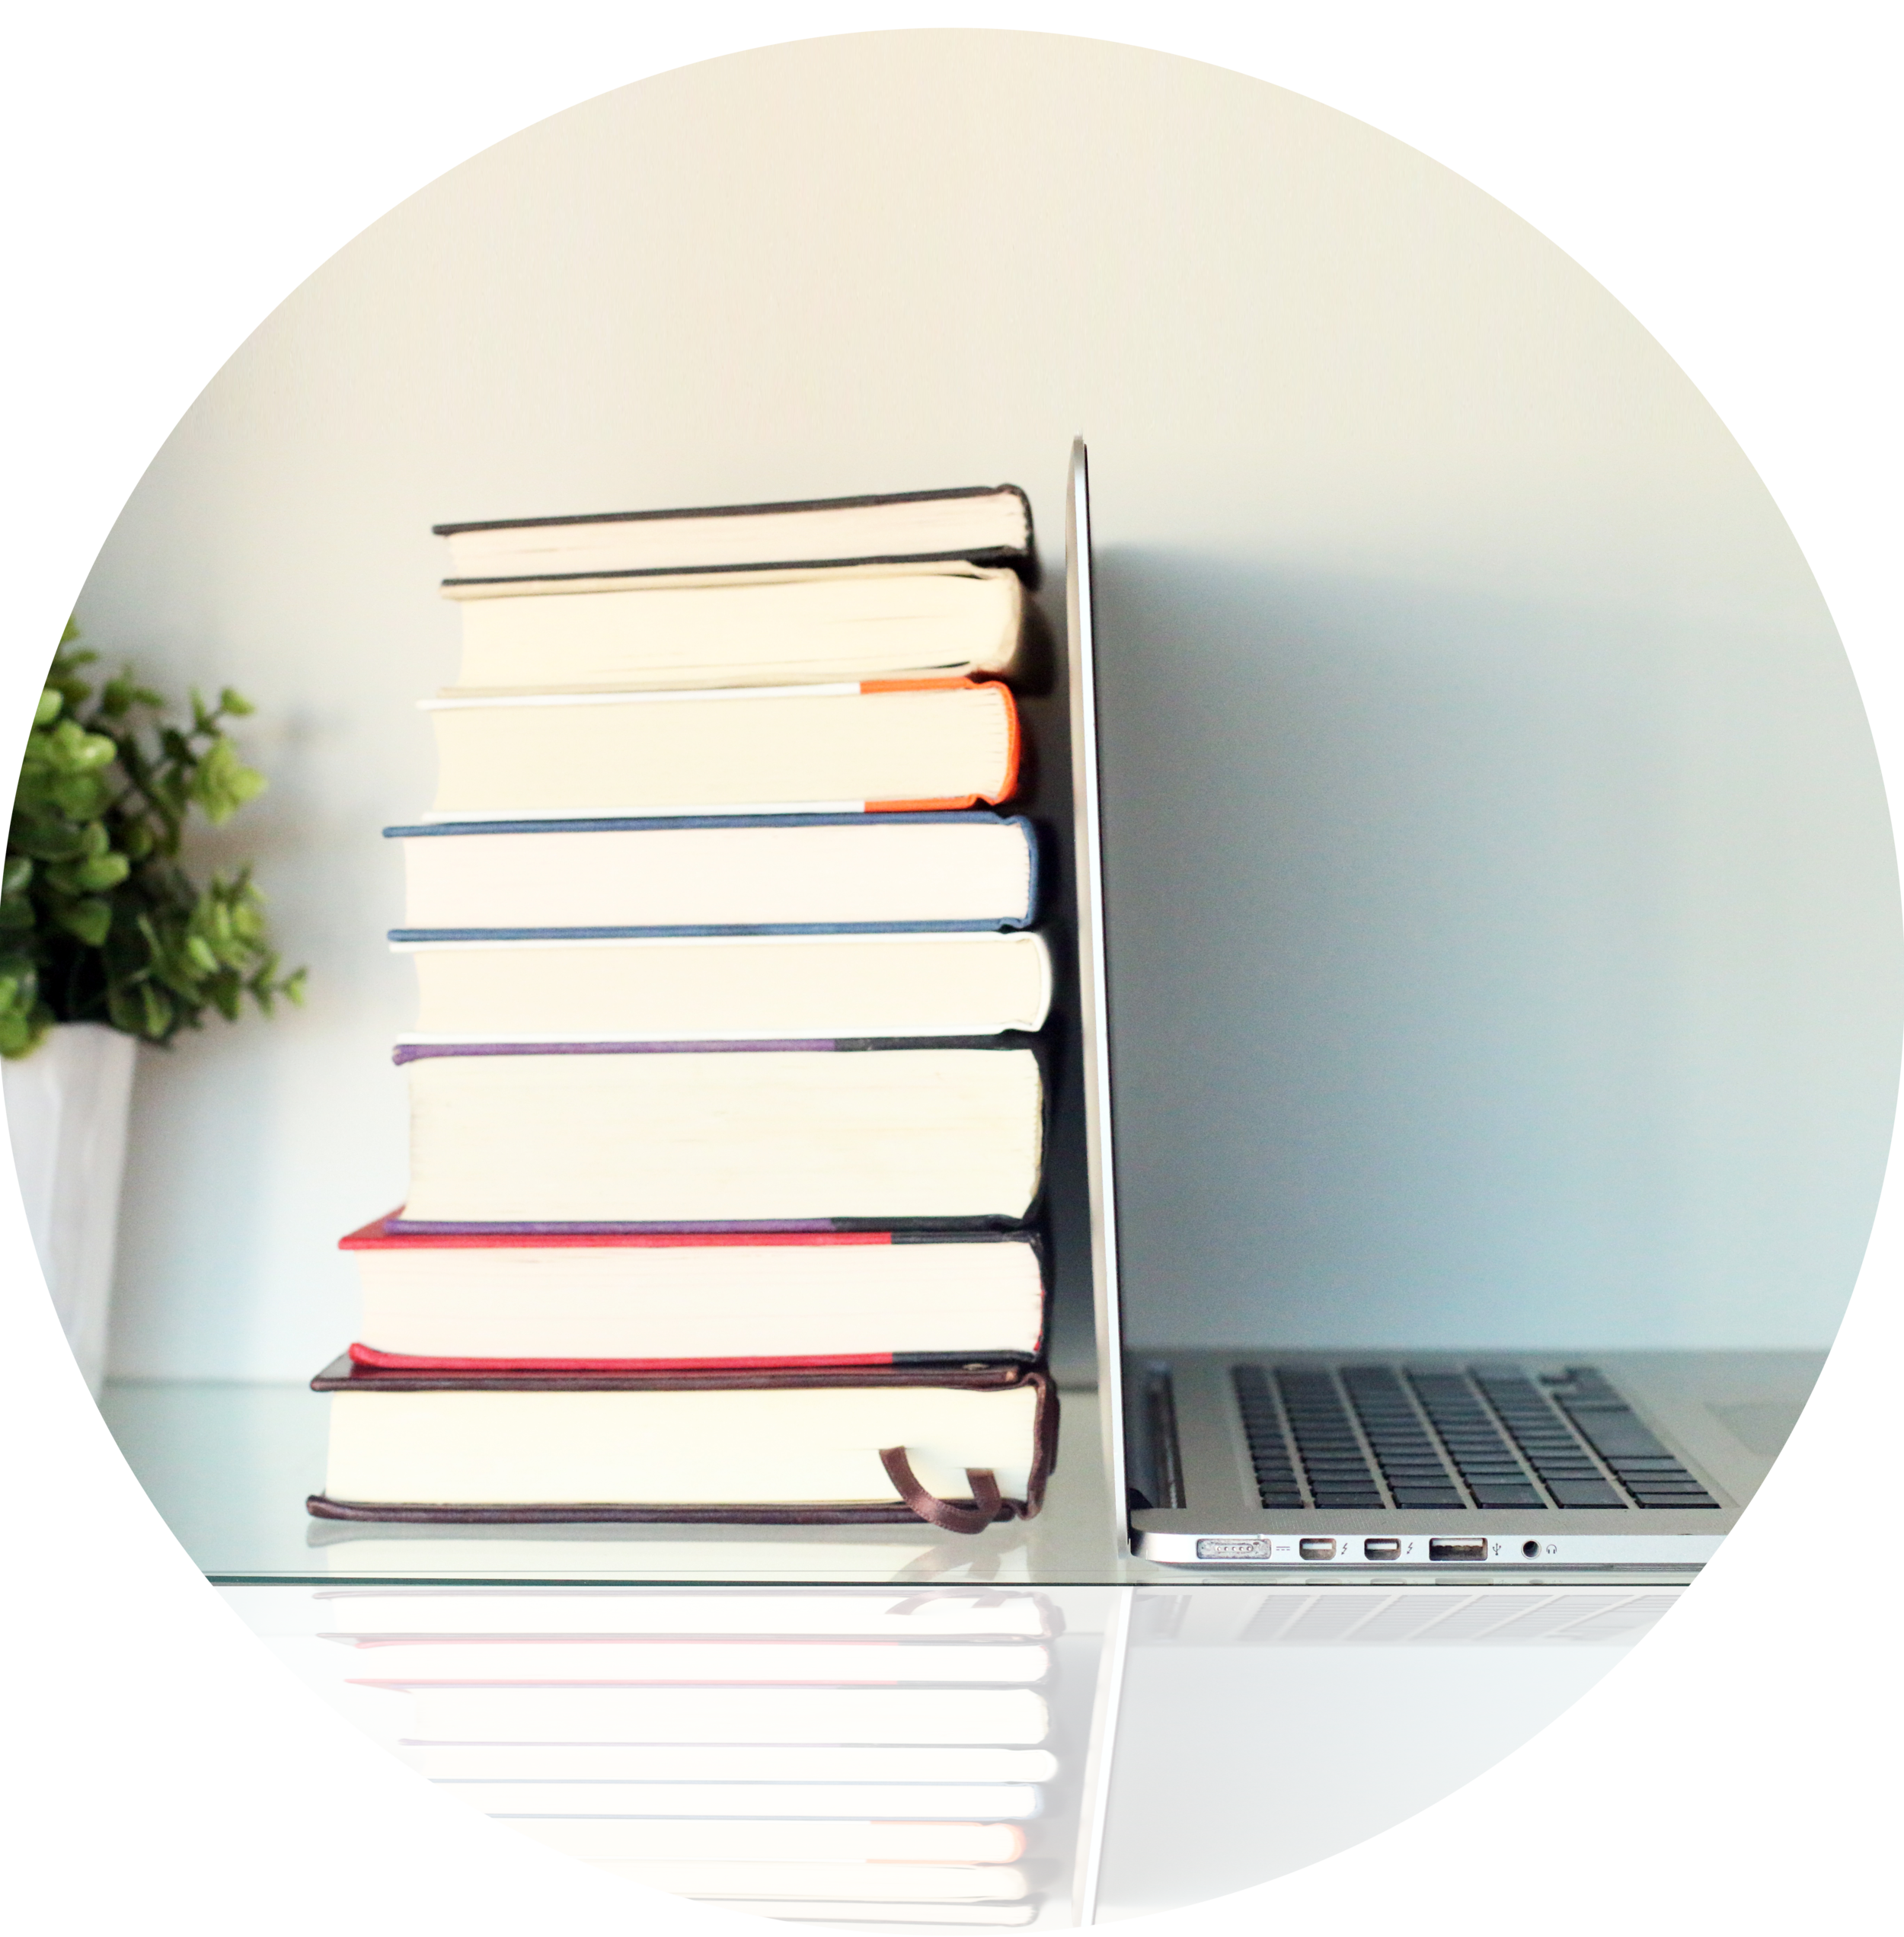 stock-photo-stack-of-books-and-laptop-on-wooden-table-370931219-1.jpg